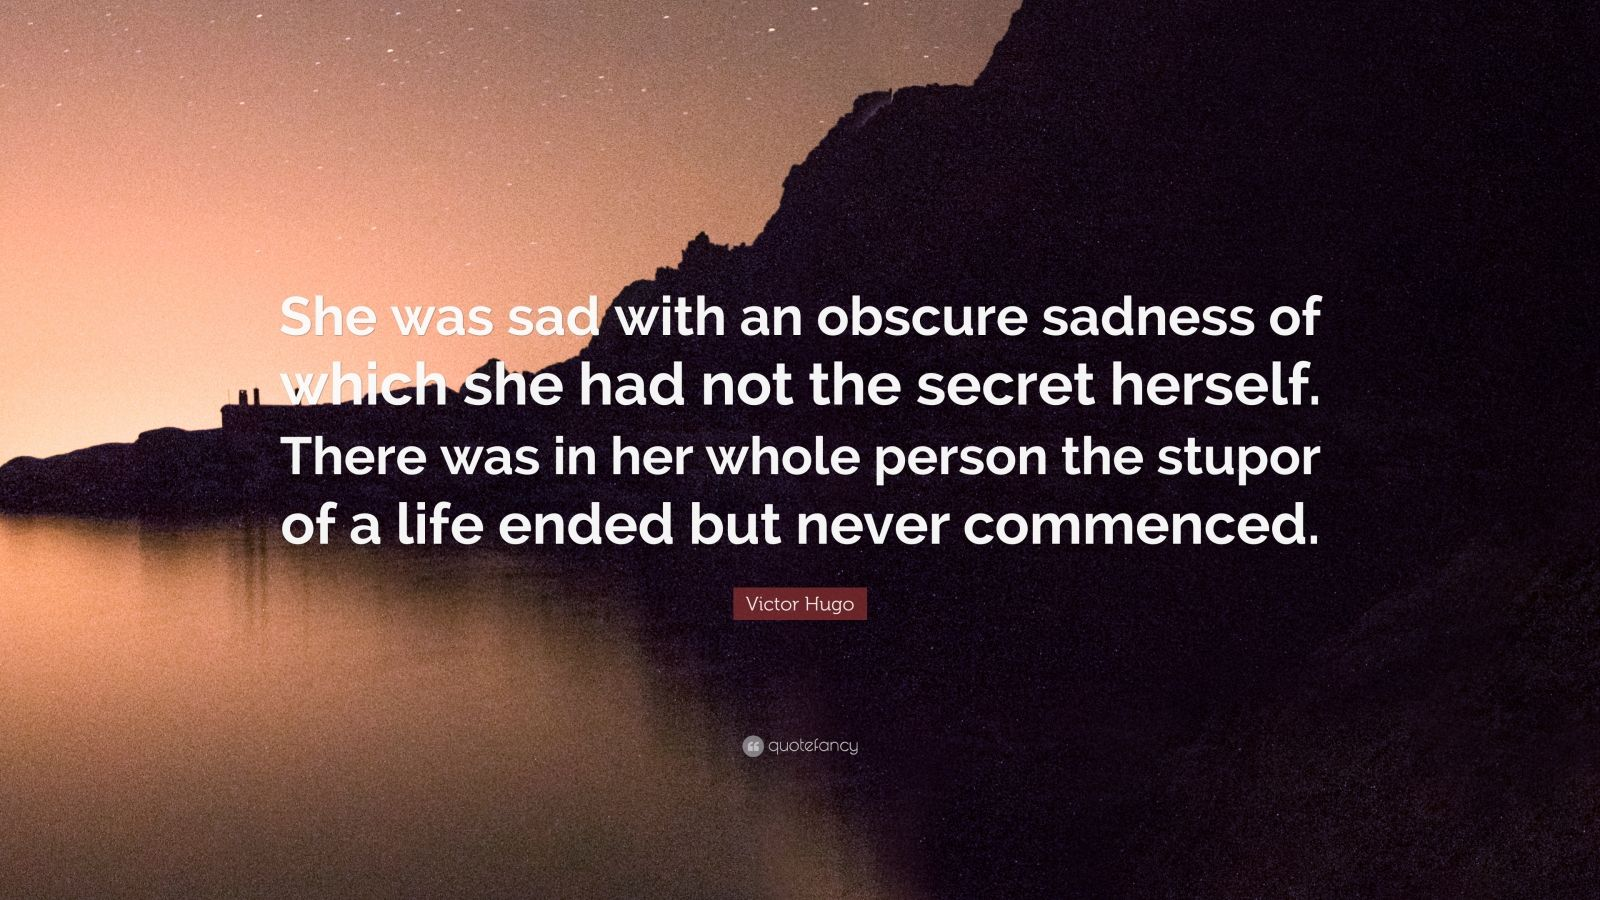 """Victor Hugo Quote: """"She was sad with an obscure sadness of which she had not the secret herself. There was in her whole person the stupor of a life ended but never commenced."""""""